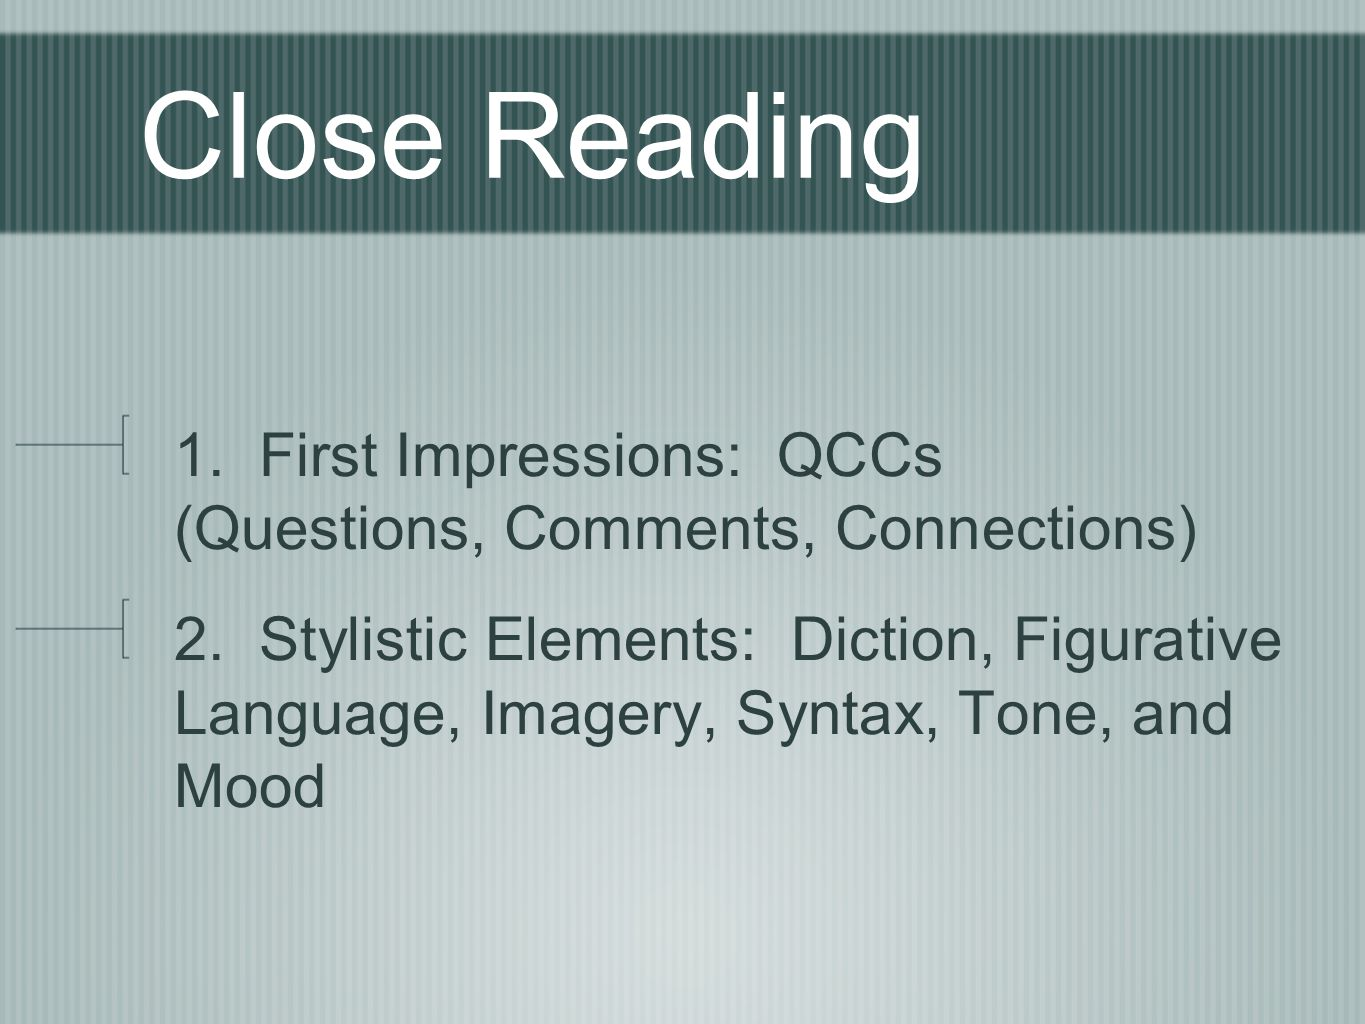 Close Reading 1. First Impressions: QCCs (Questions, Comments, Connections) 2. Stylistic Elements: Diction, Figurative Language, Imagery, Syntax, Tone